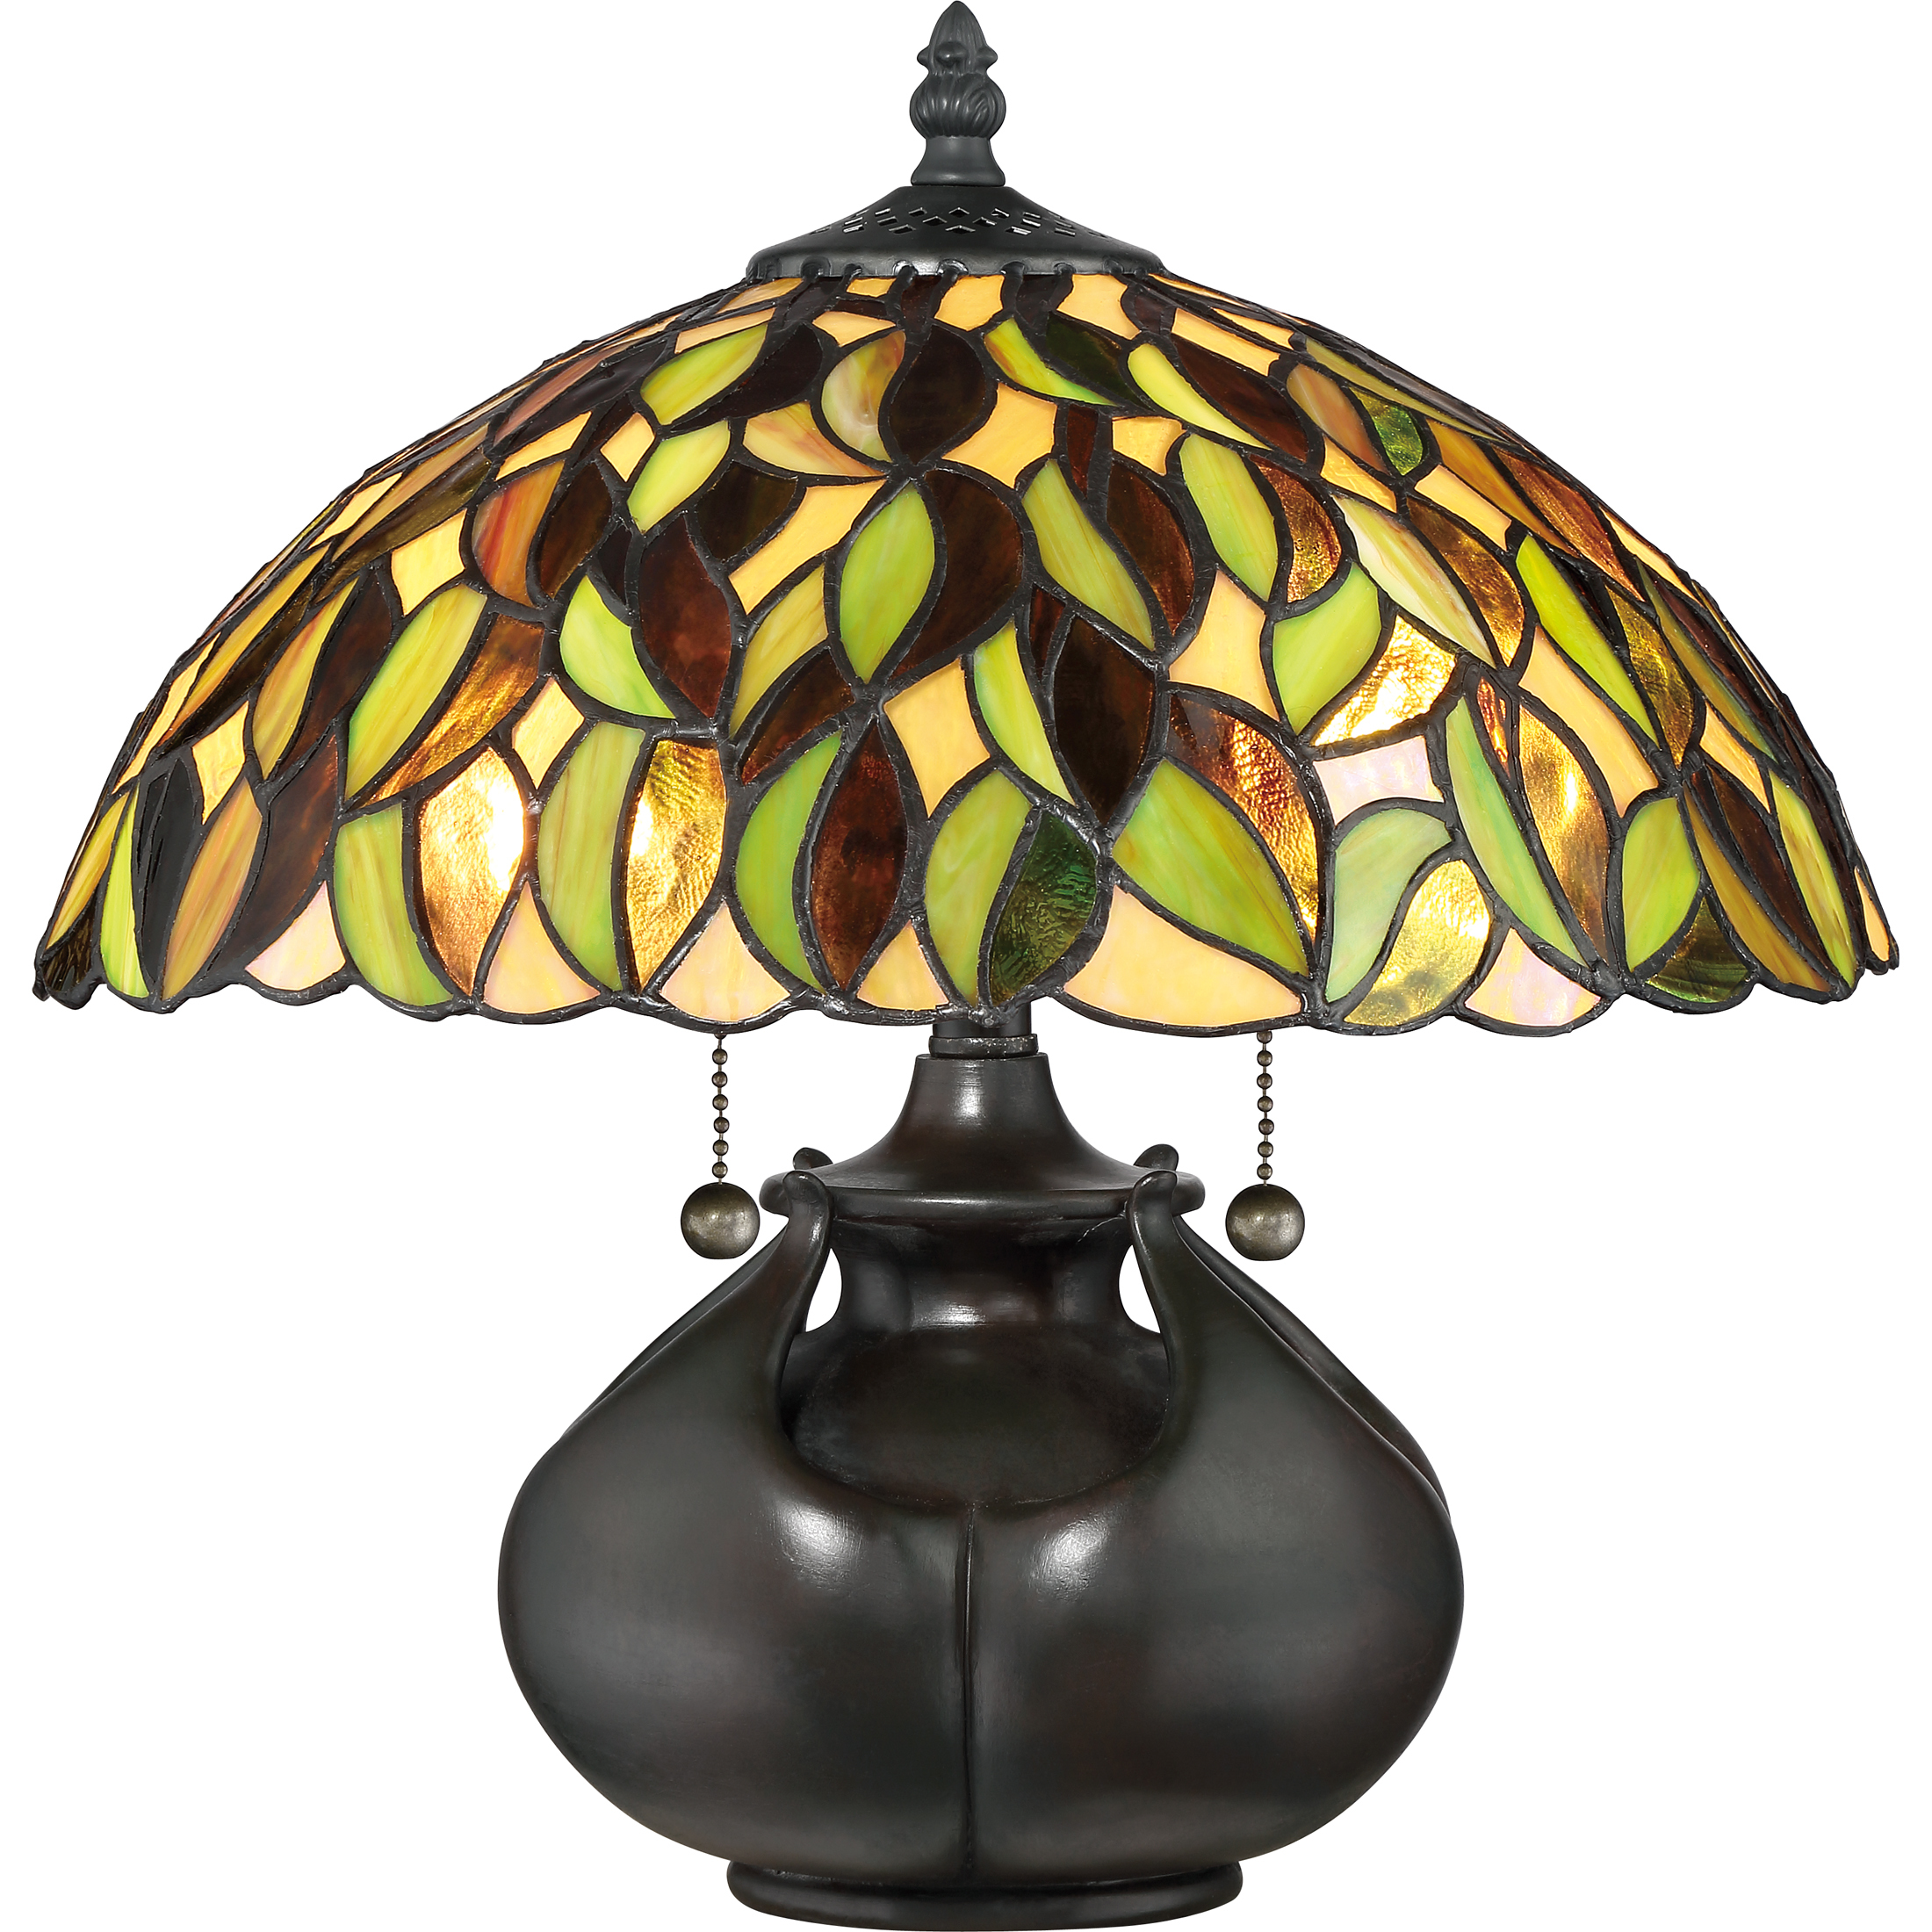 Quoizel Lighting Tf3181t Shipped Direct